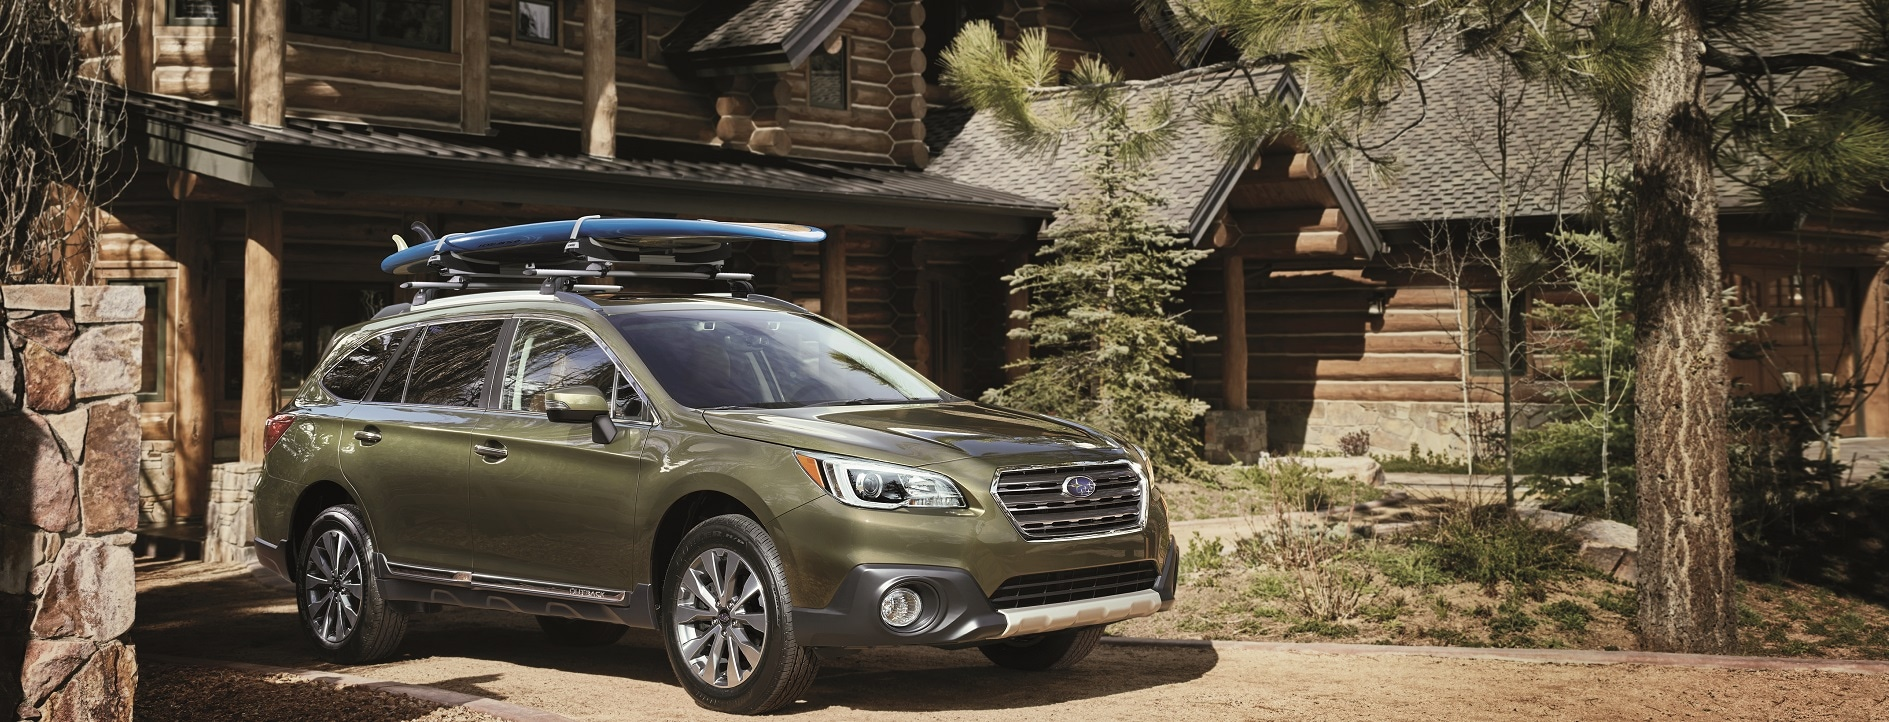 2017 Subaru Outback Near Boston